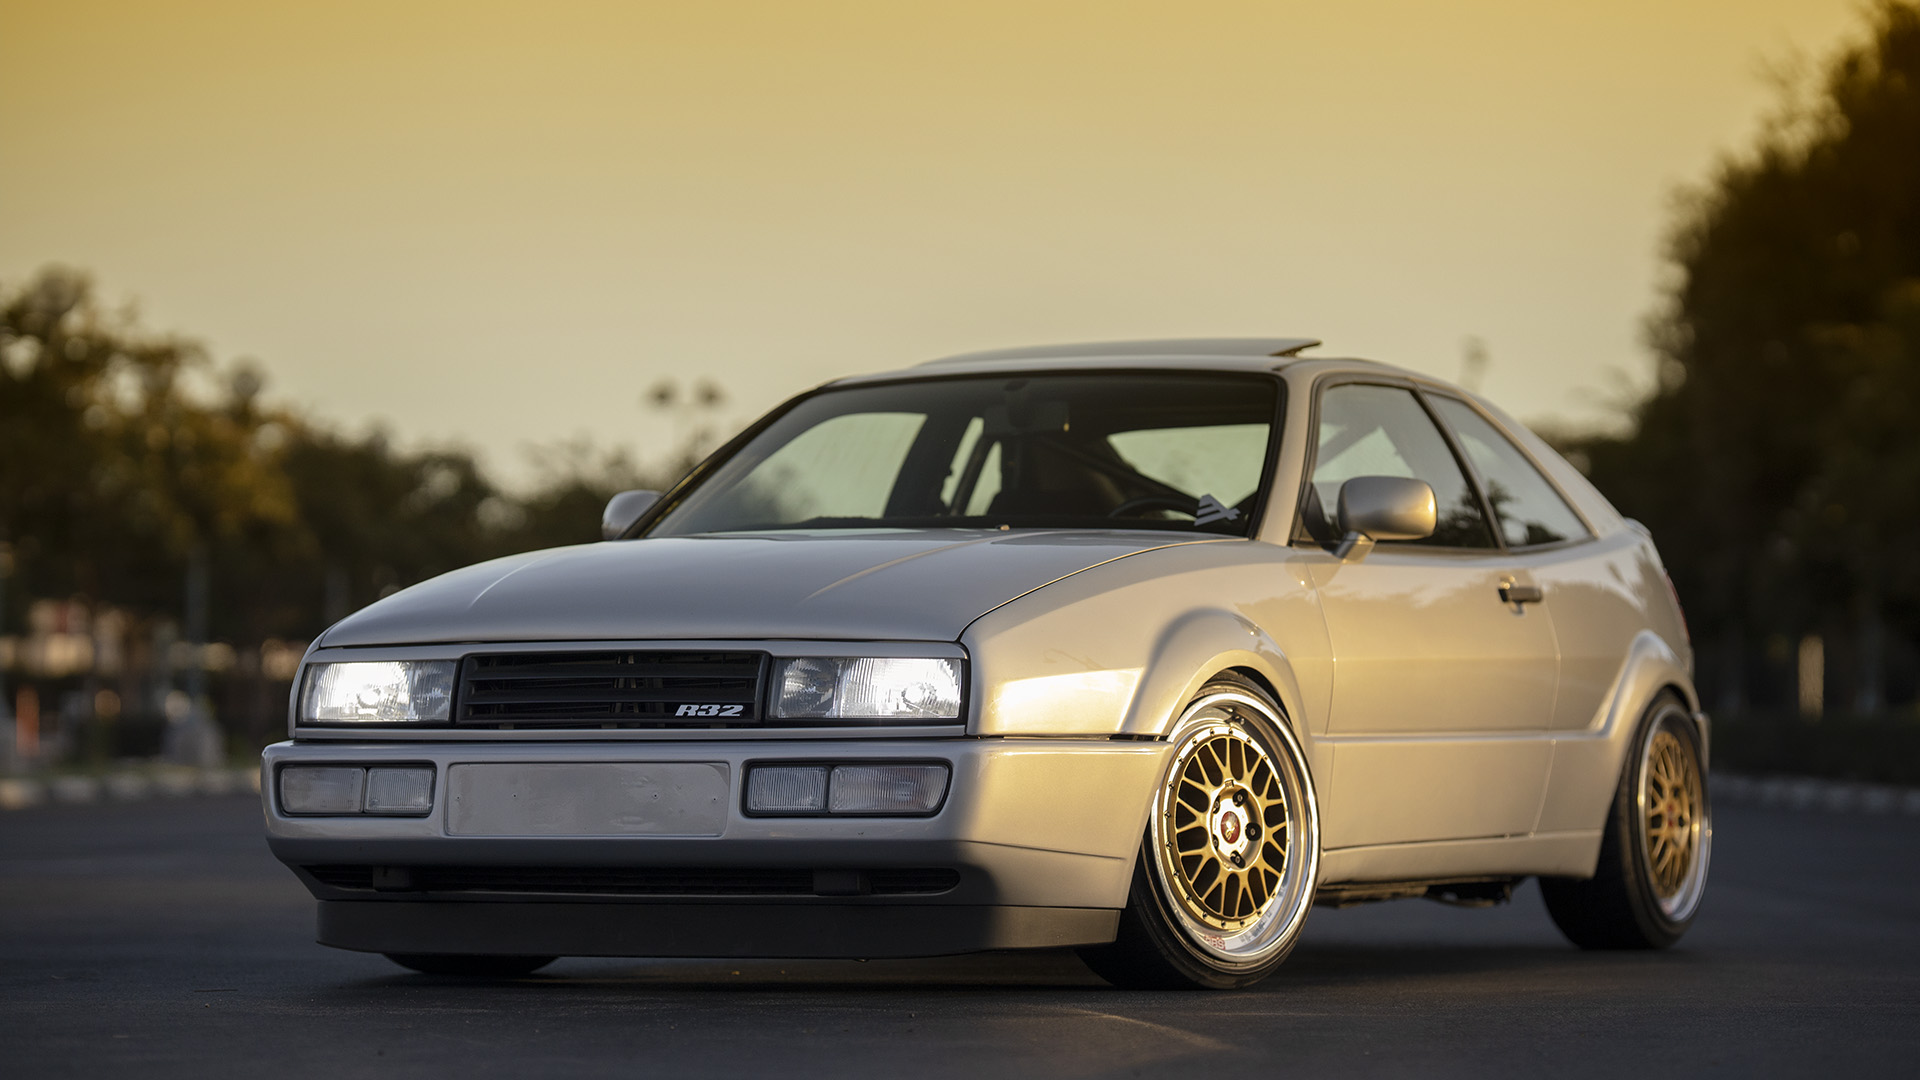 Love and Attention – R32-Swapped Volkswagen Corrado